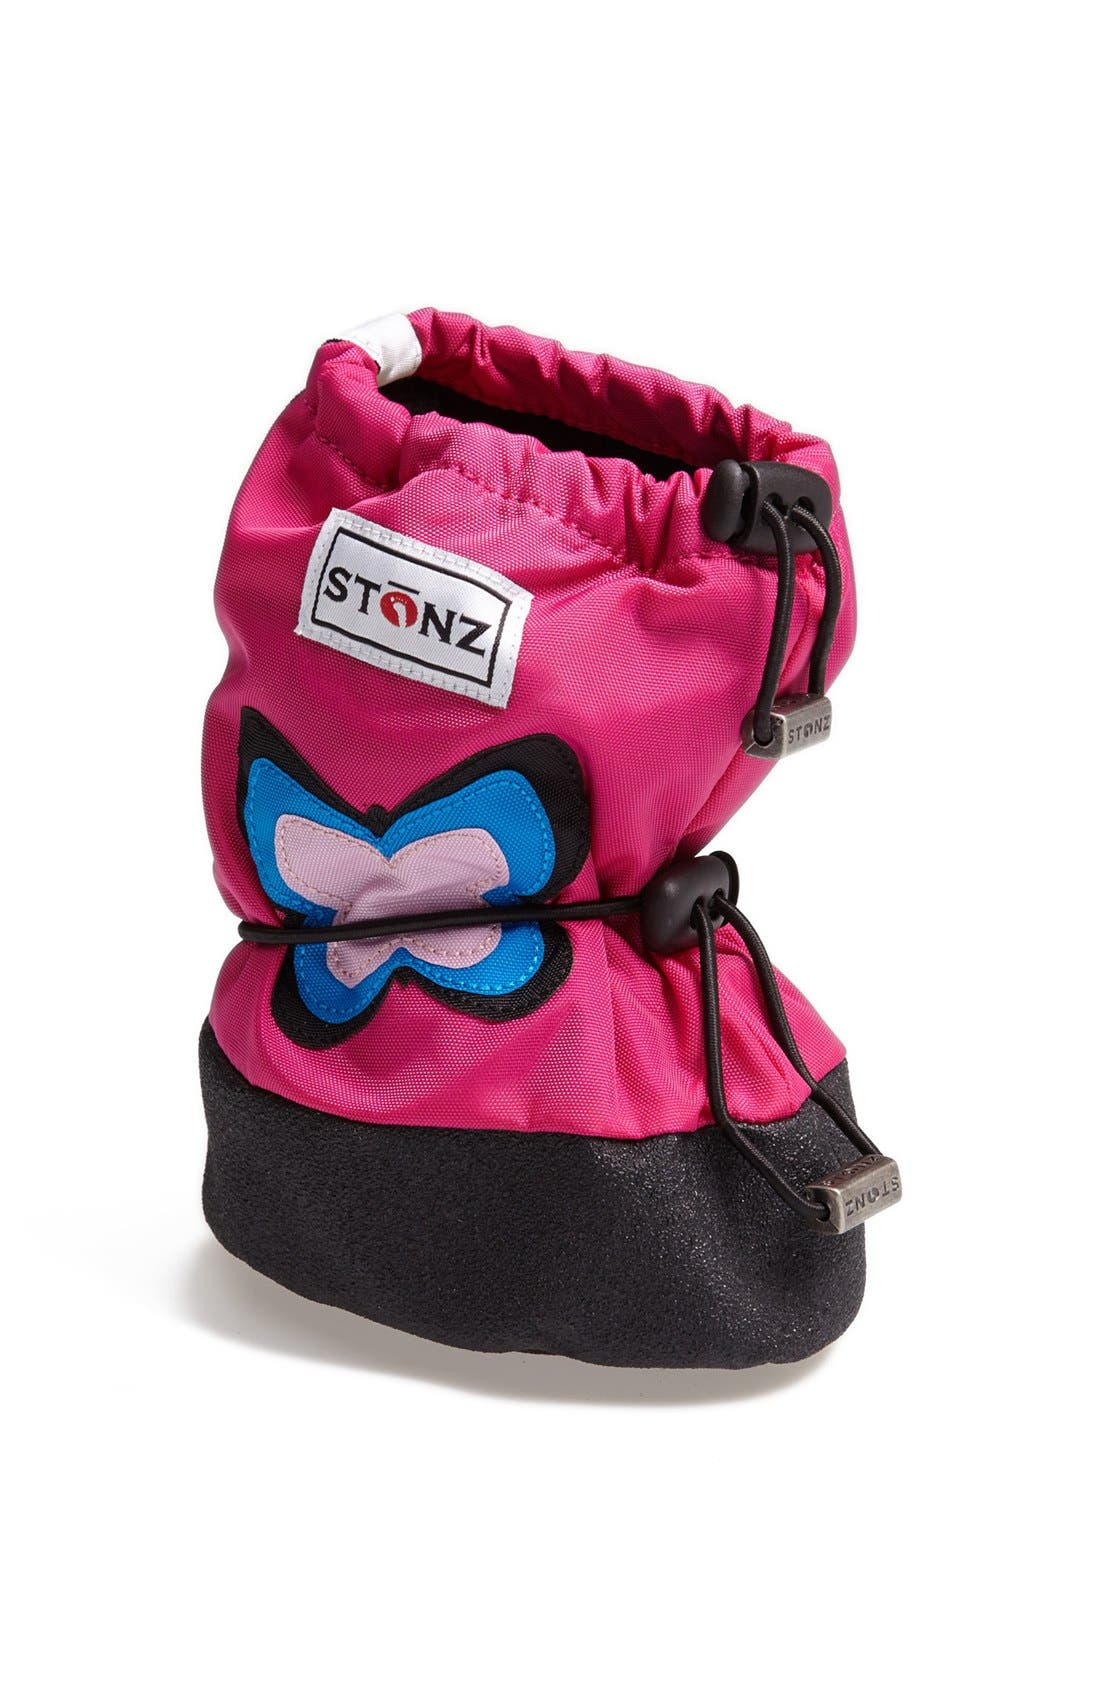 Alternate Image 1 Selected - Stonz 'Butterfly' Water Resistant Over-Shoe Bootie (Baby & Walker)